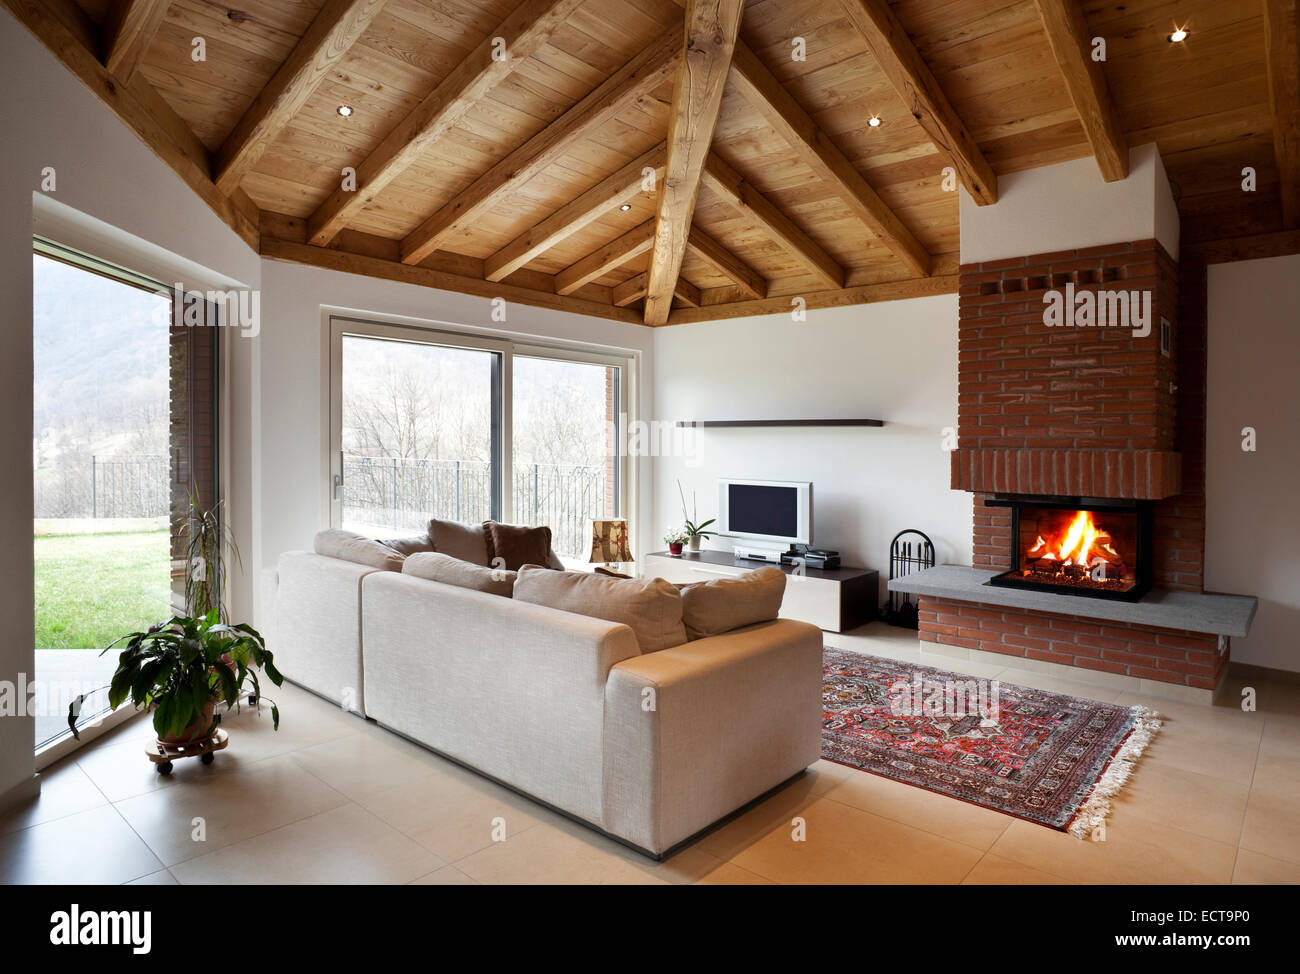 Wooden Roof Interior High Resolution Stock Photography And Images Alamy